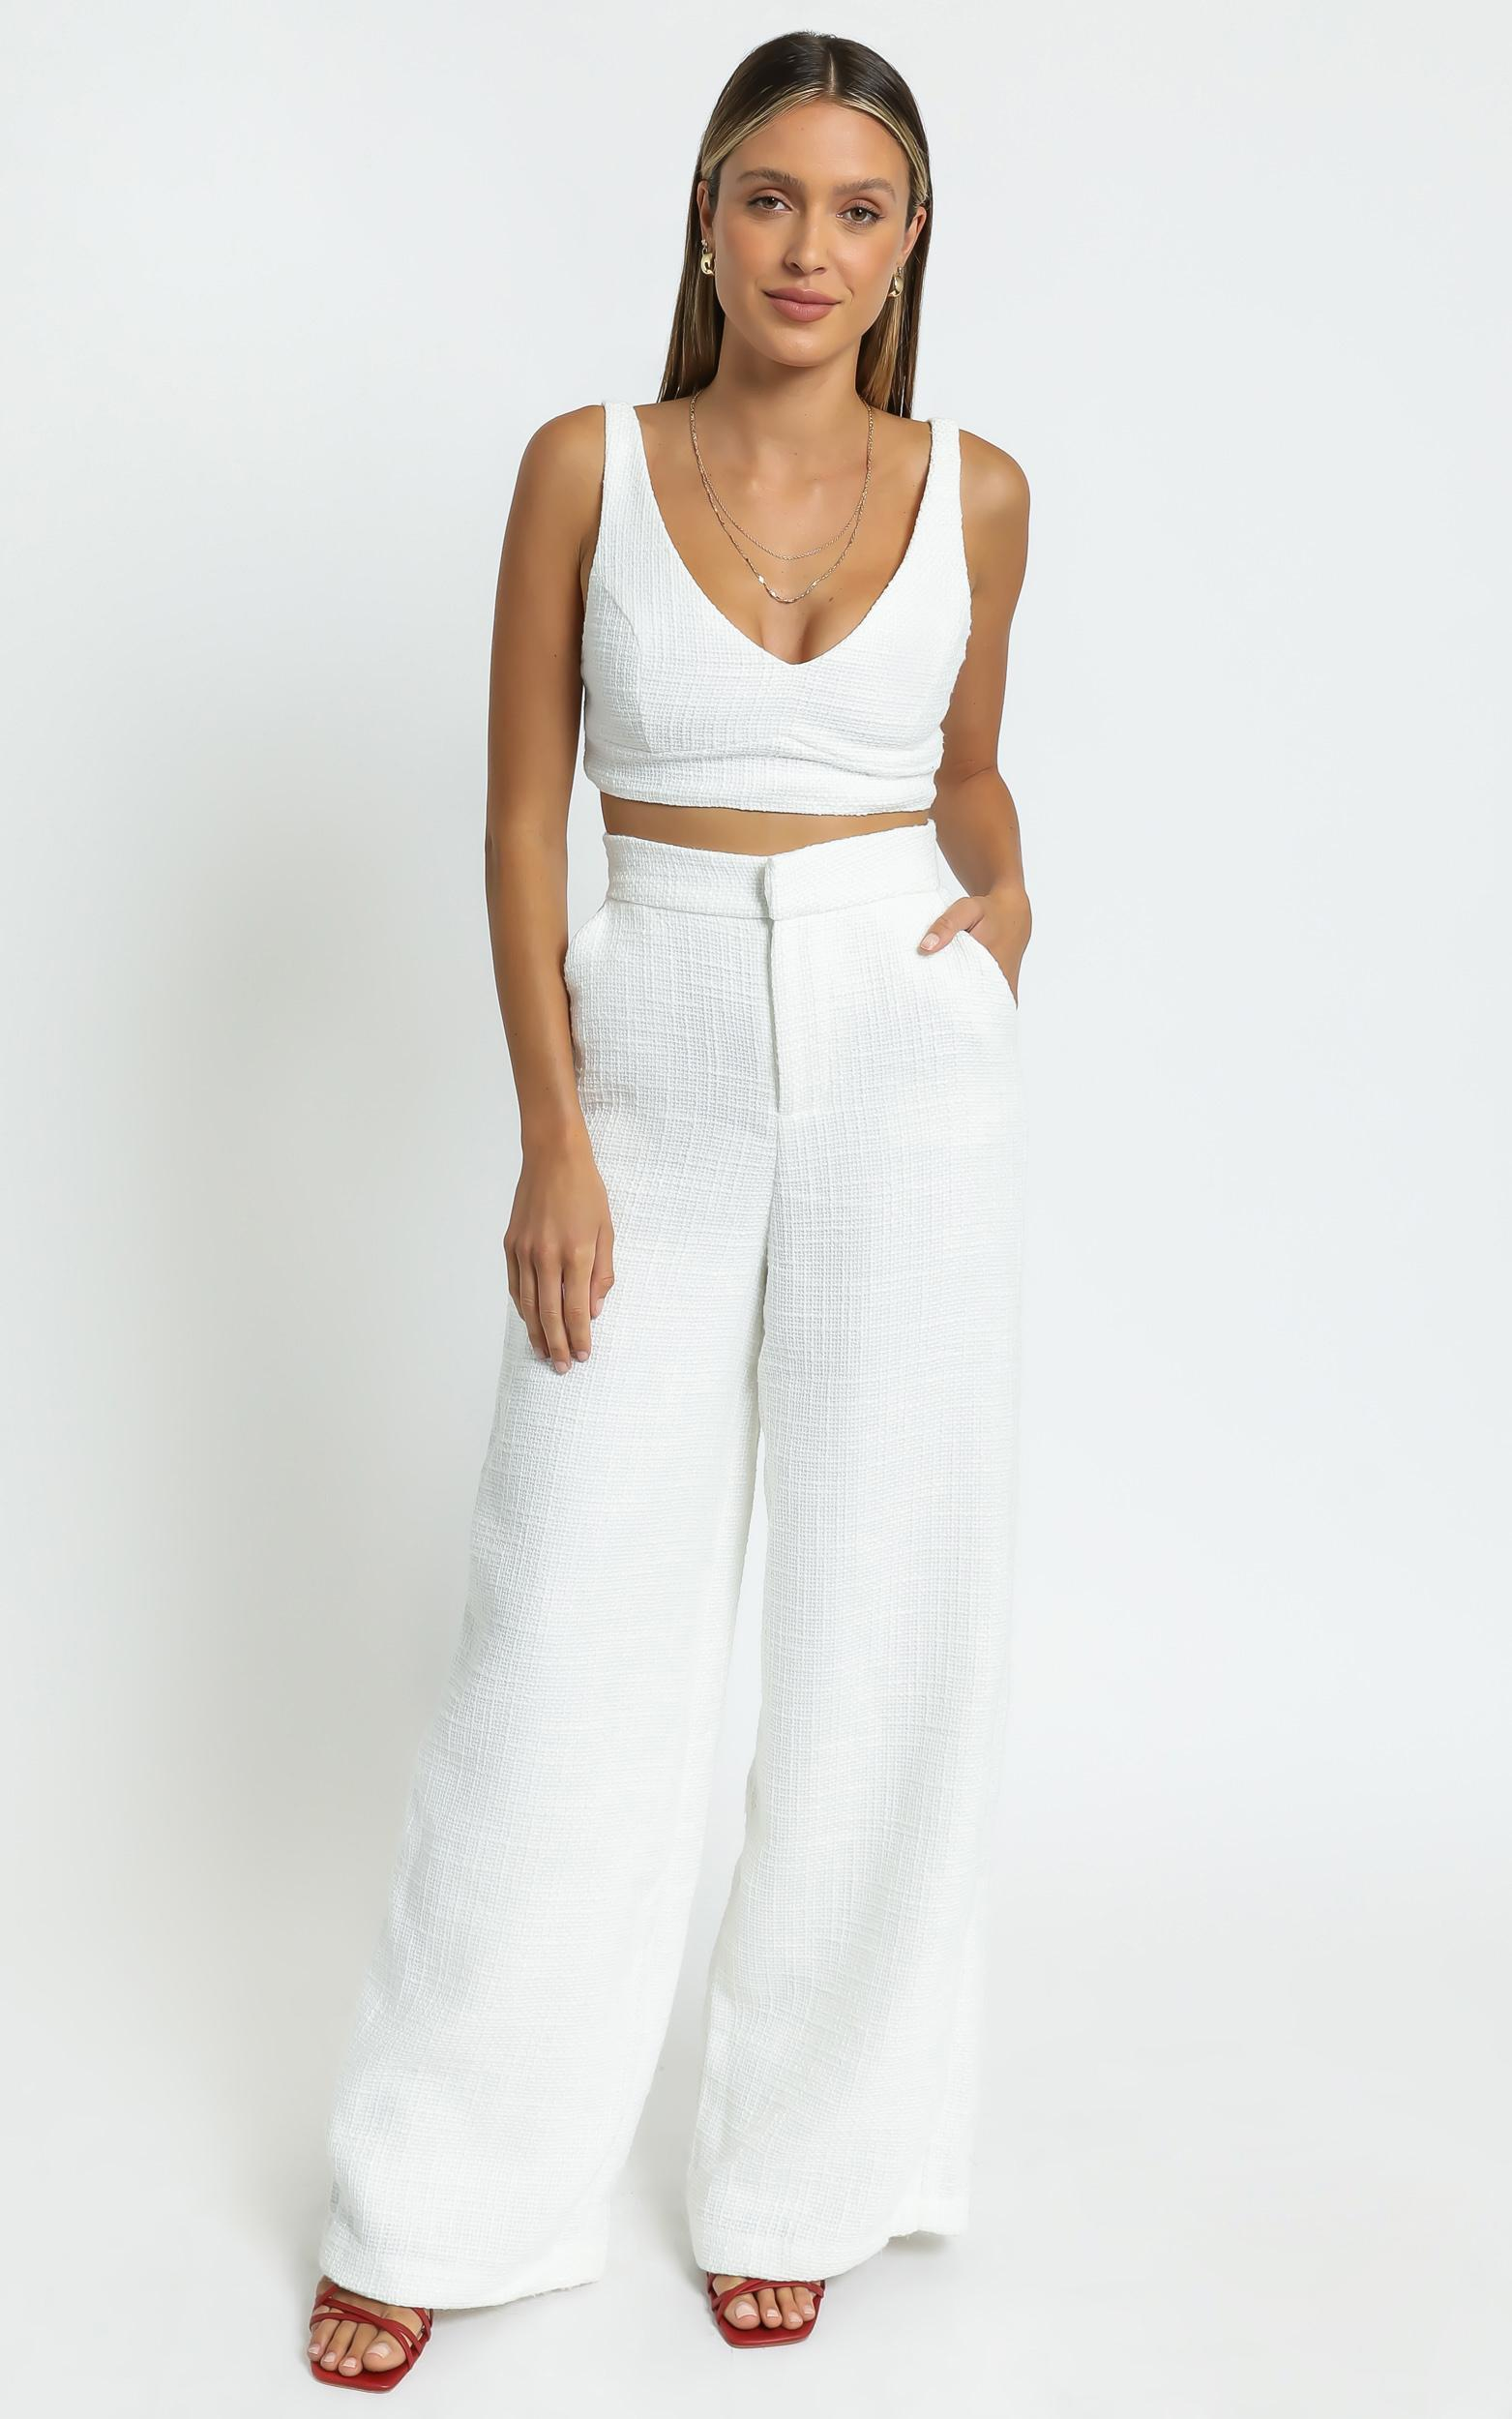 Adelaide Two Piece Set in White - 6 (XS), White, hi-res image number null